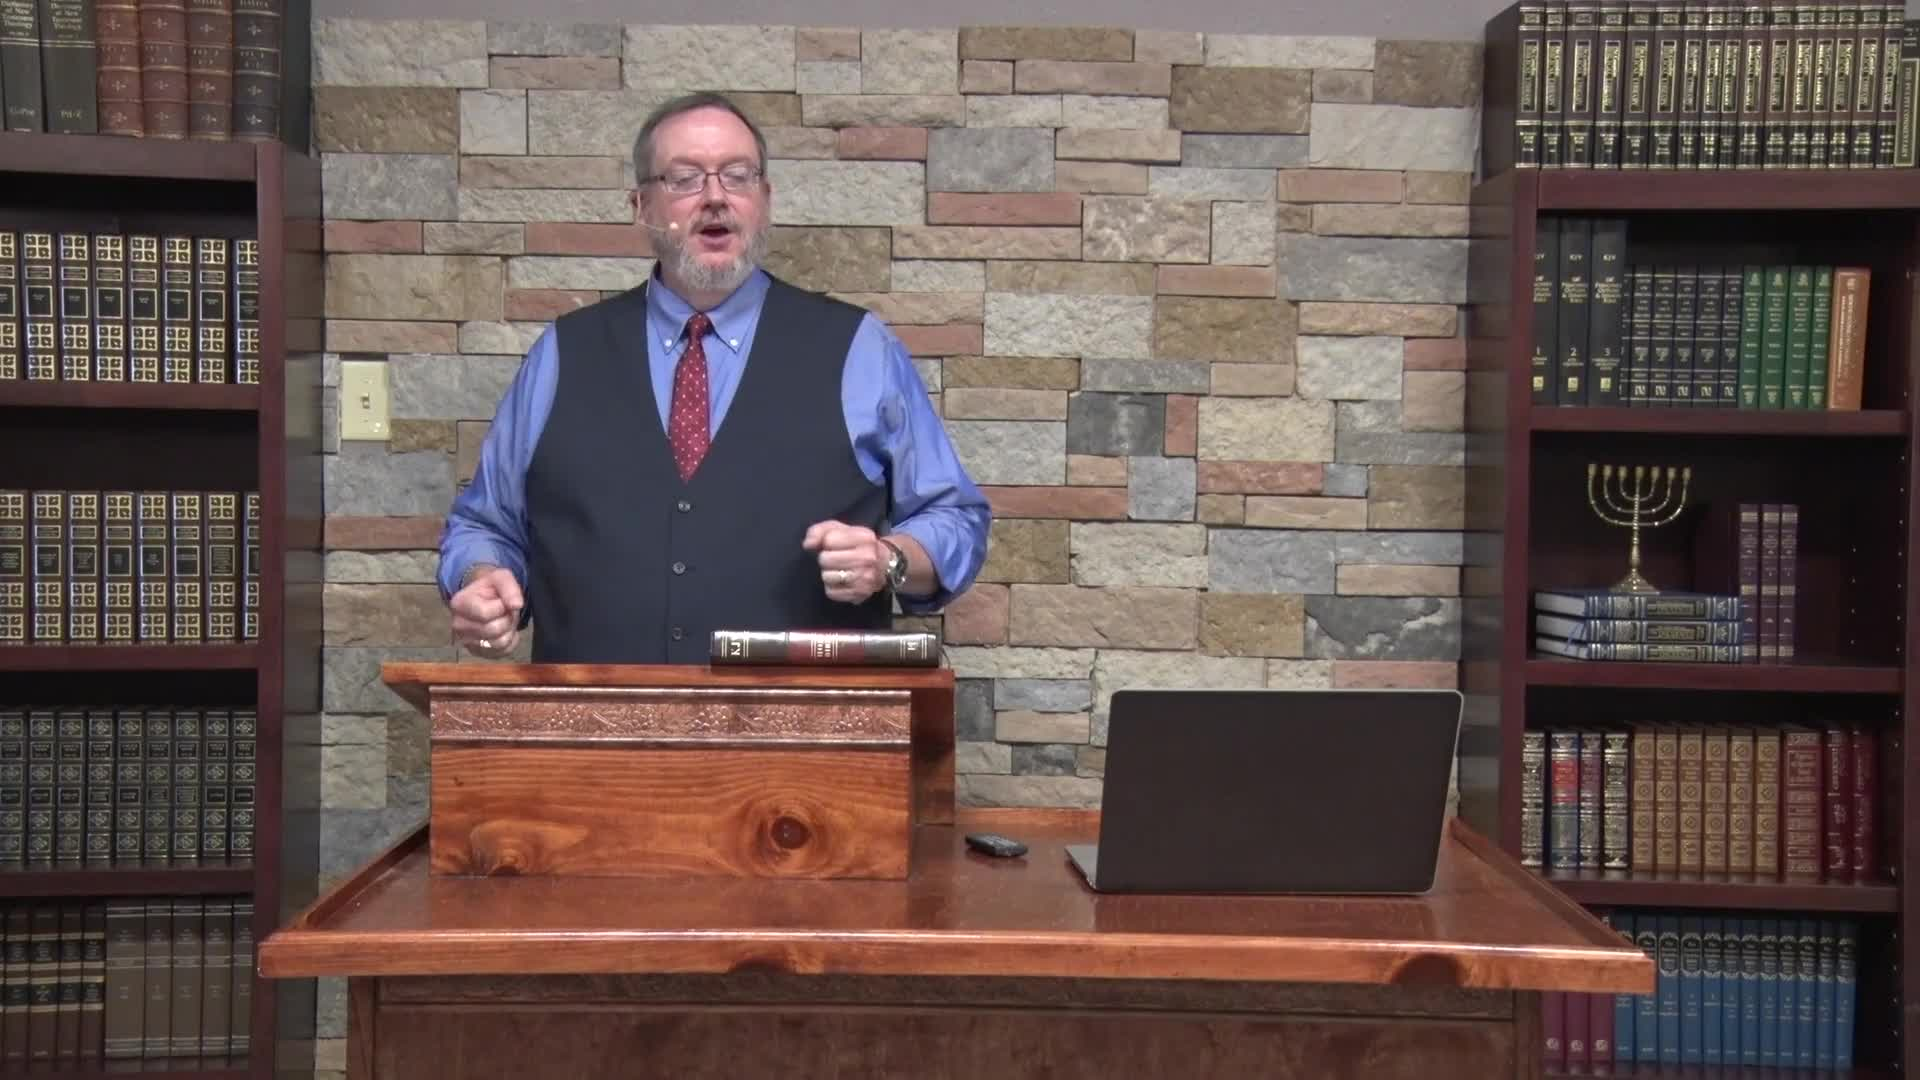 Michael K Lake - The Sevenfold Anointing of Messiah Part 1